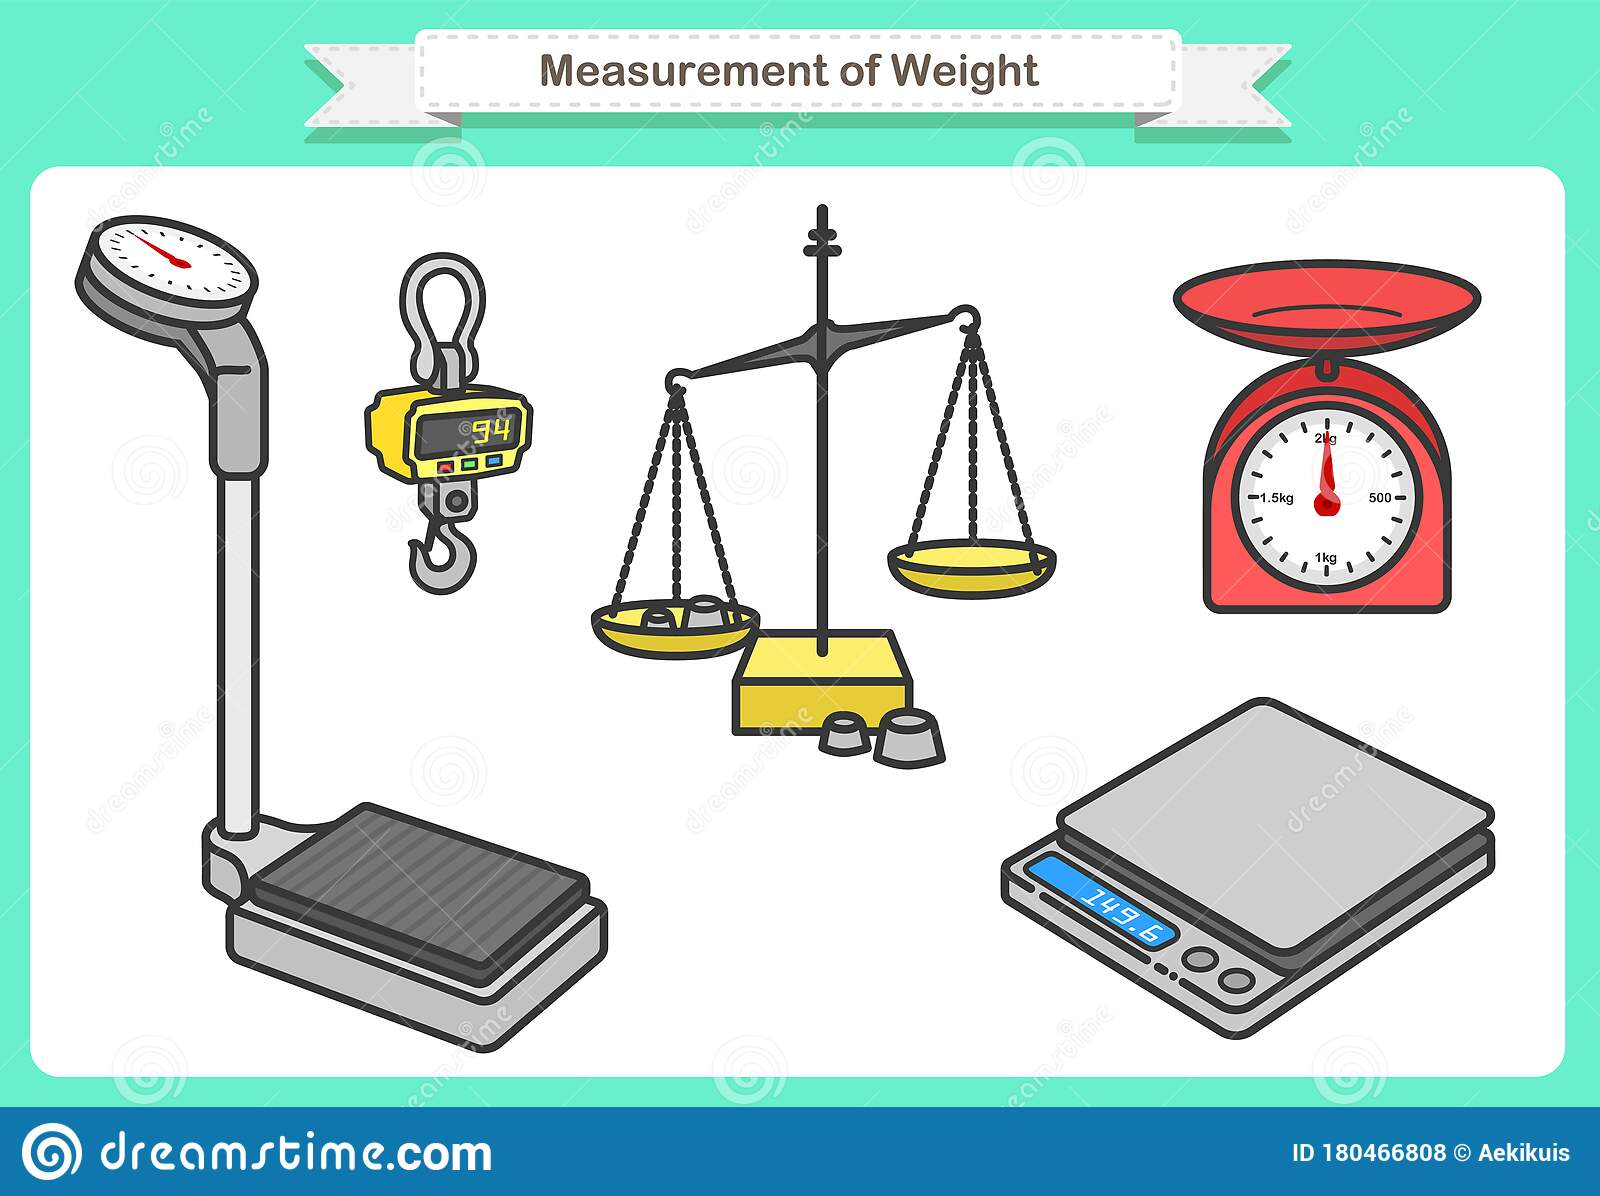 Measurement Of Weight Objects Such As Measurement Of Mass